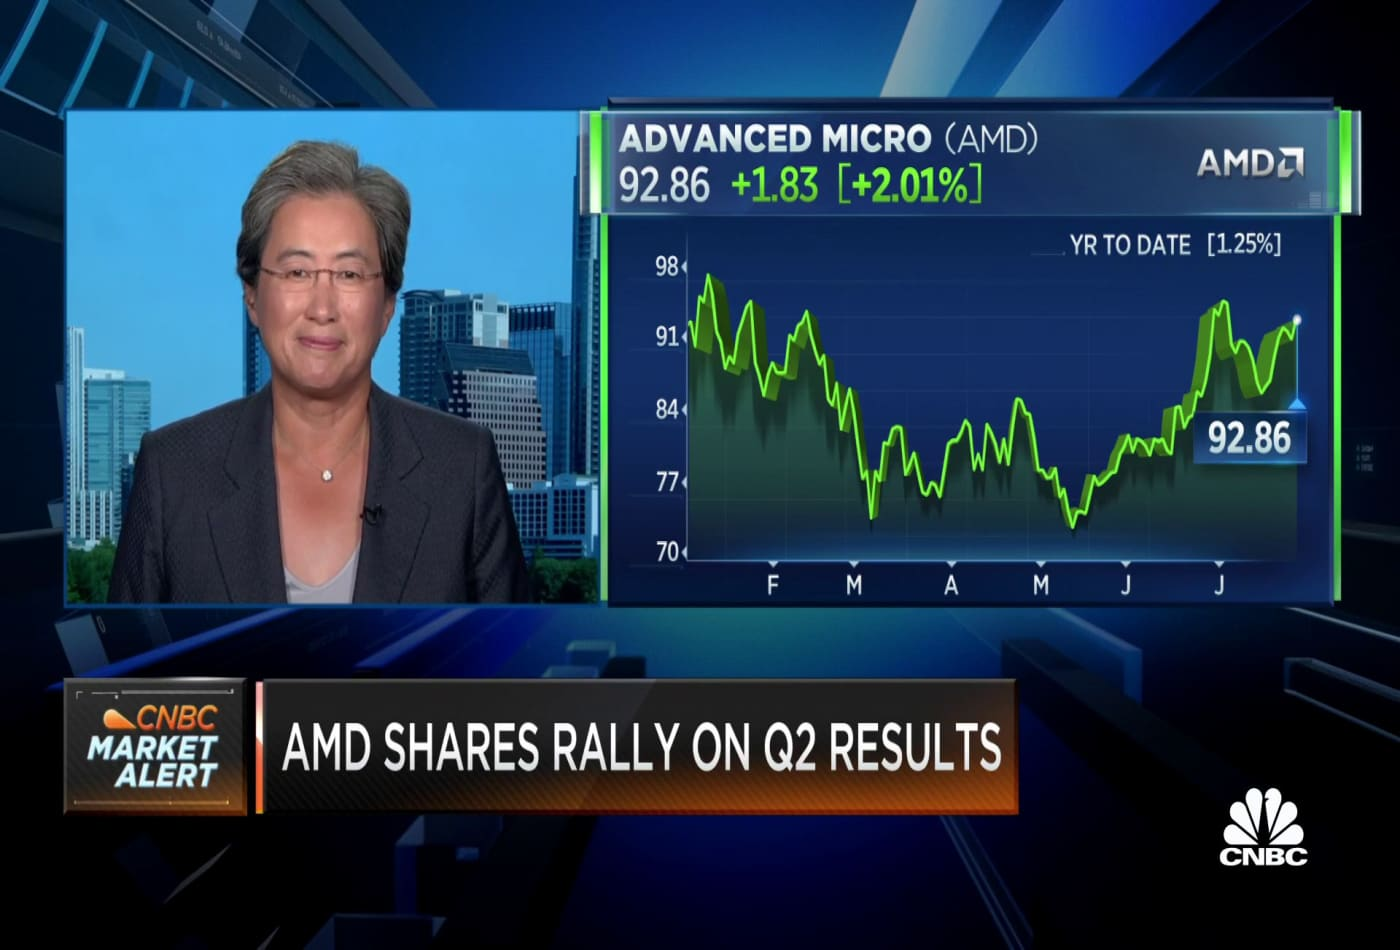 AMD CEO on earnings: It's a strong demand environment